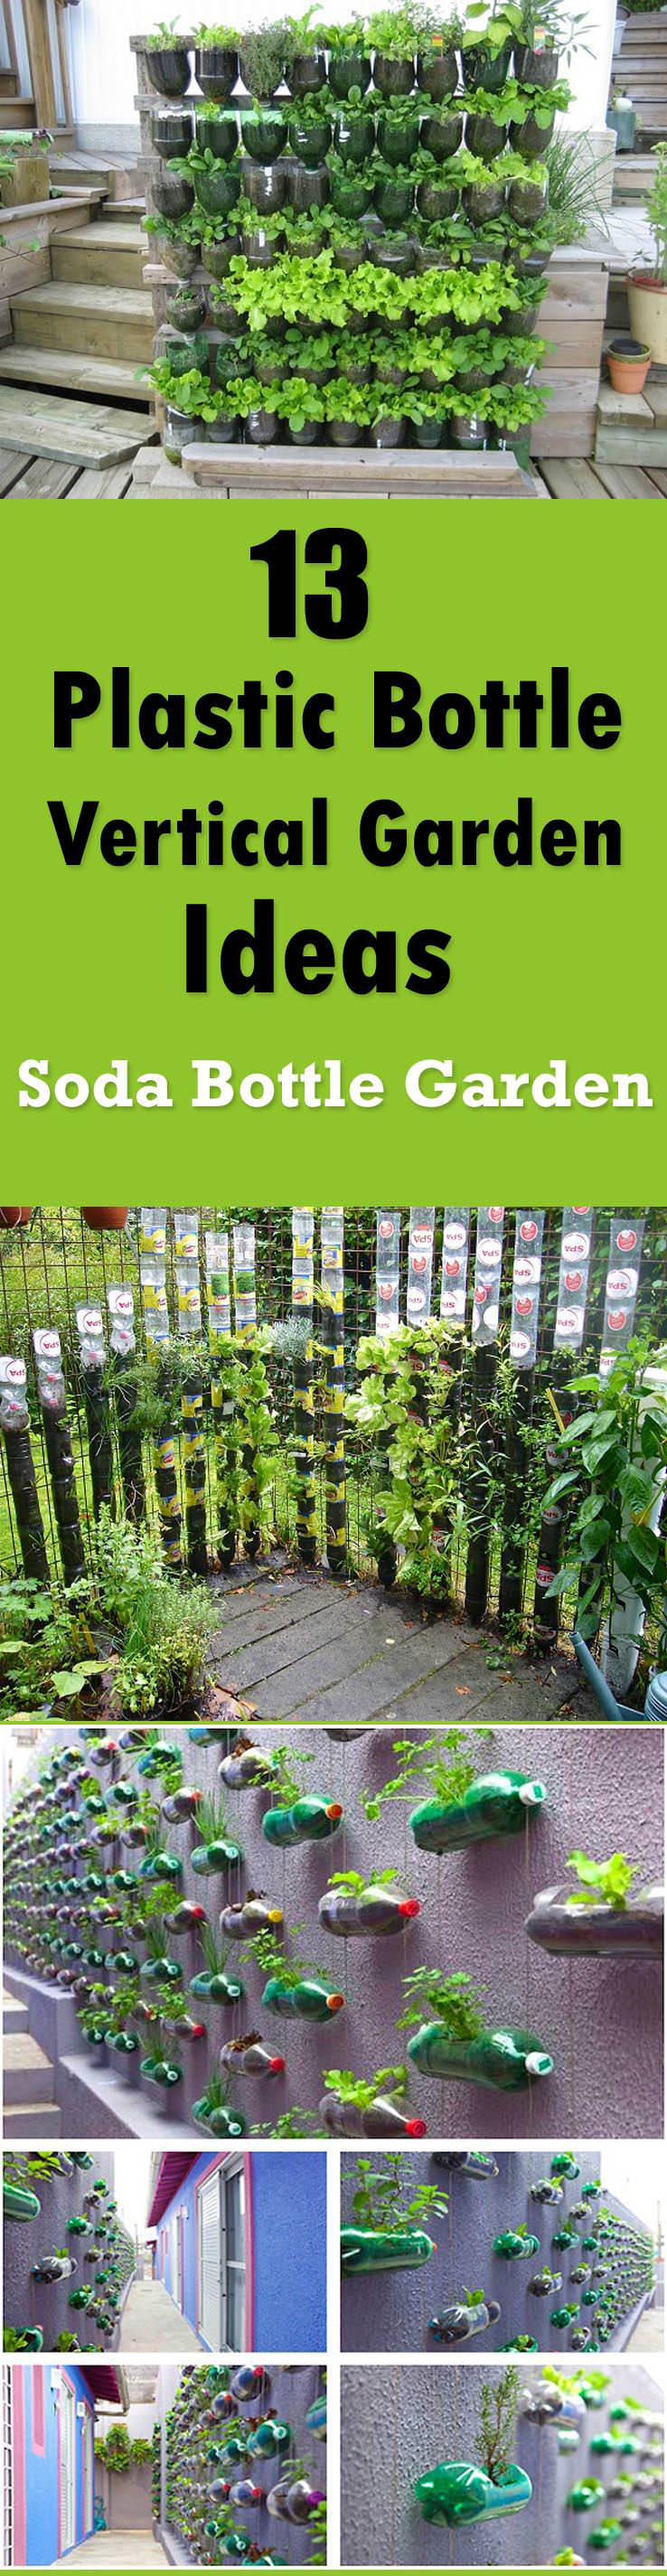 plastic bottle verticle garden ideas